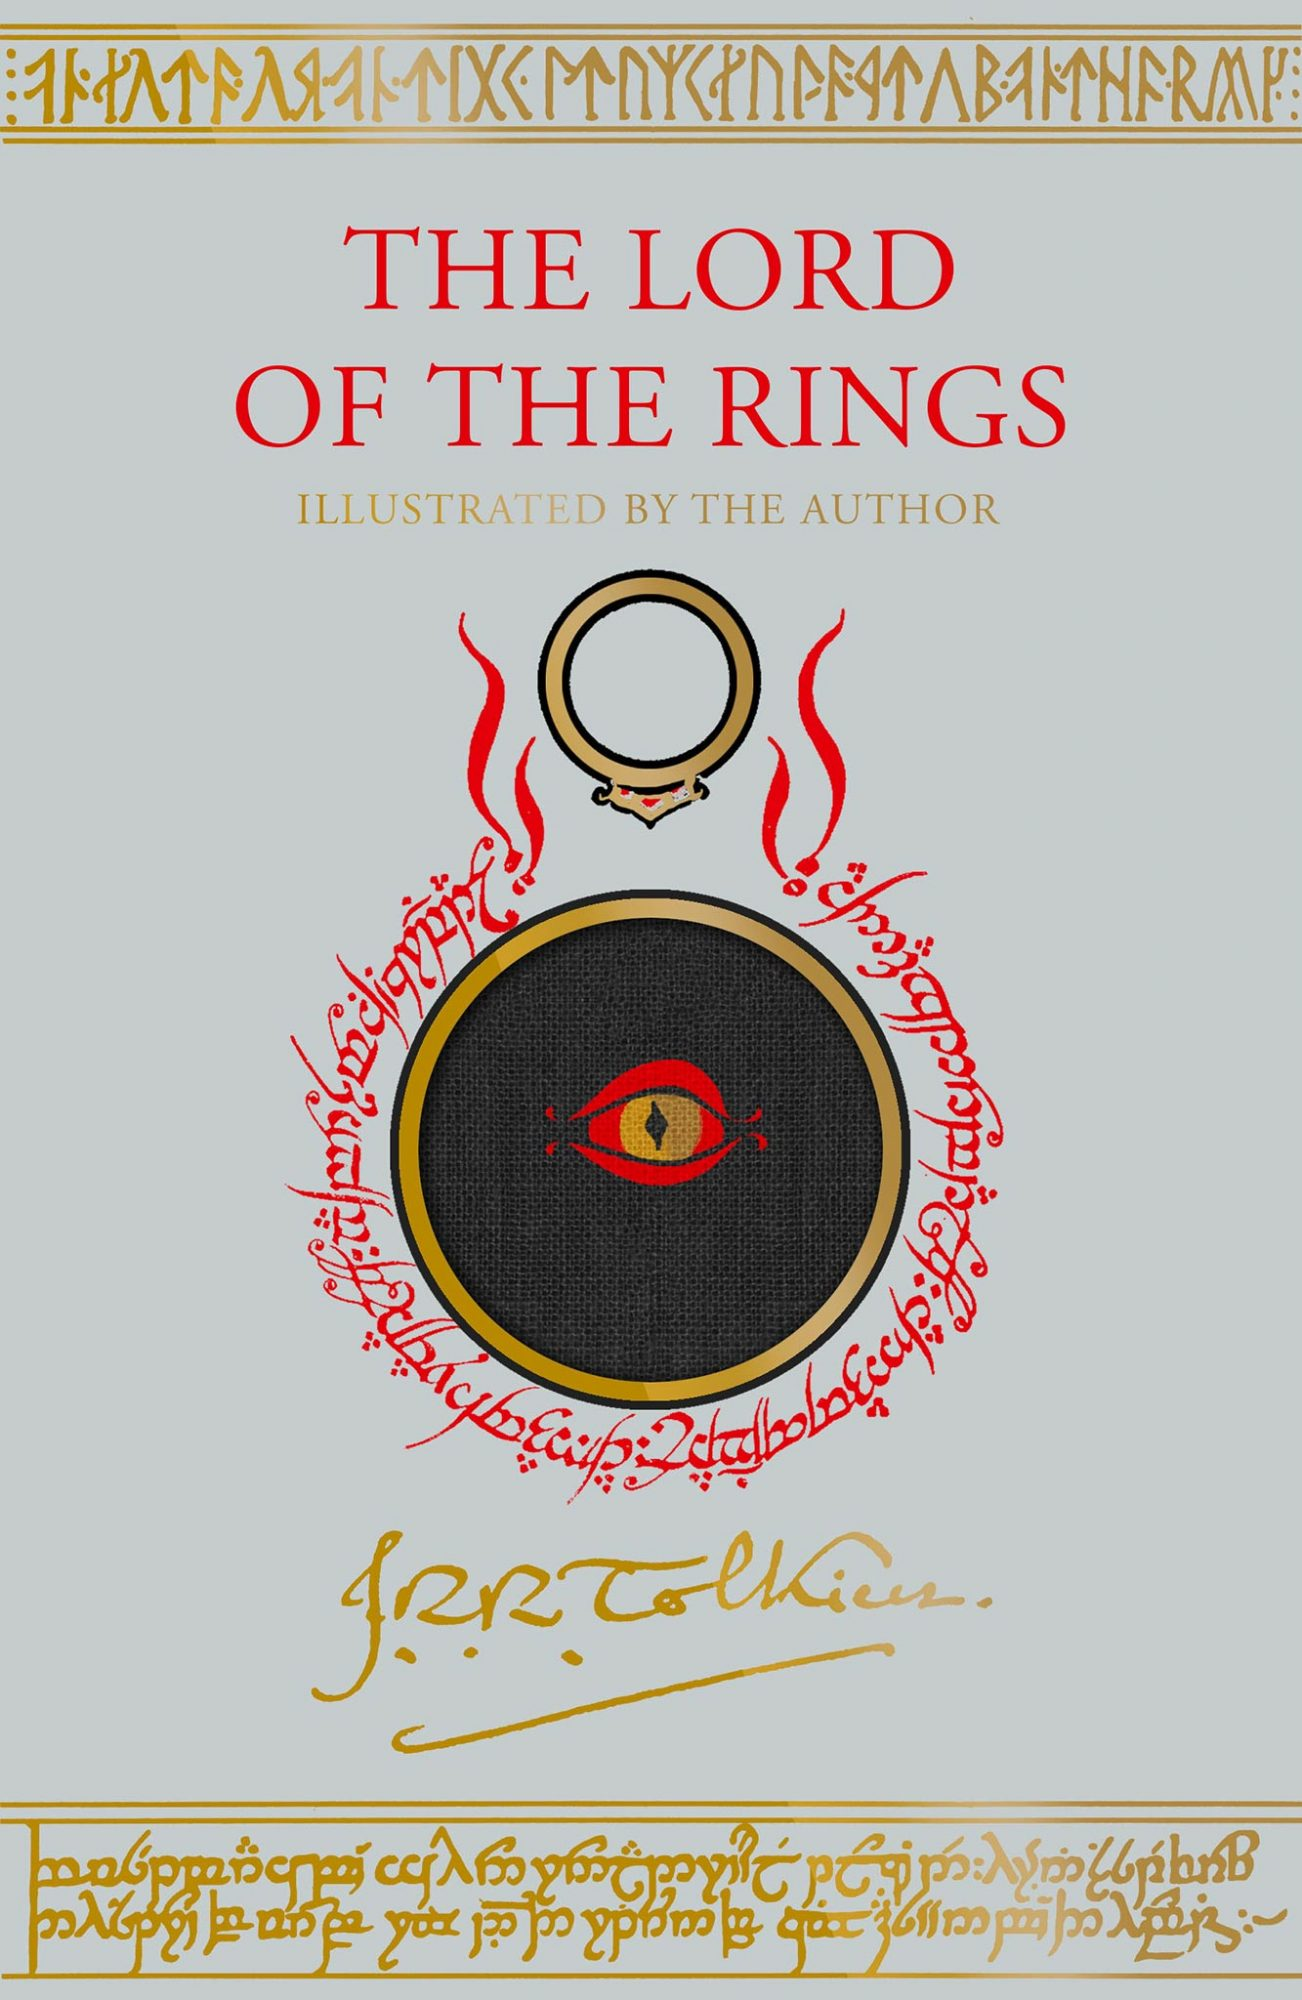 The Lord of the Rings edition including JRR Tokien's own art